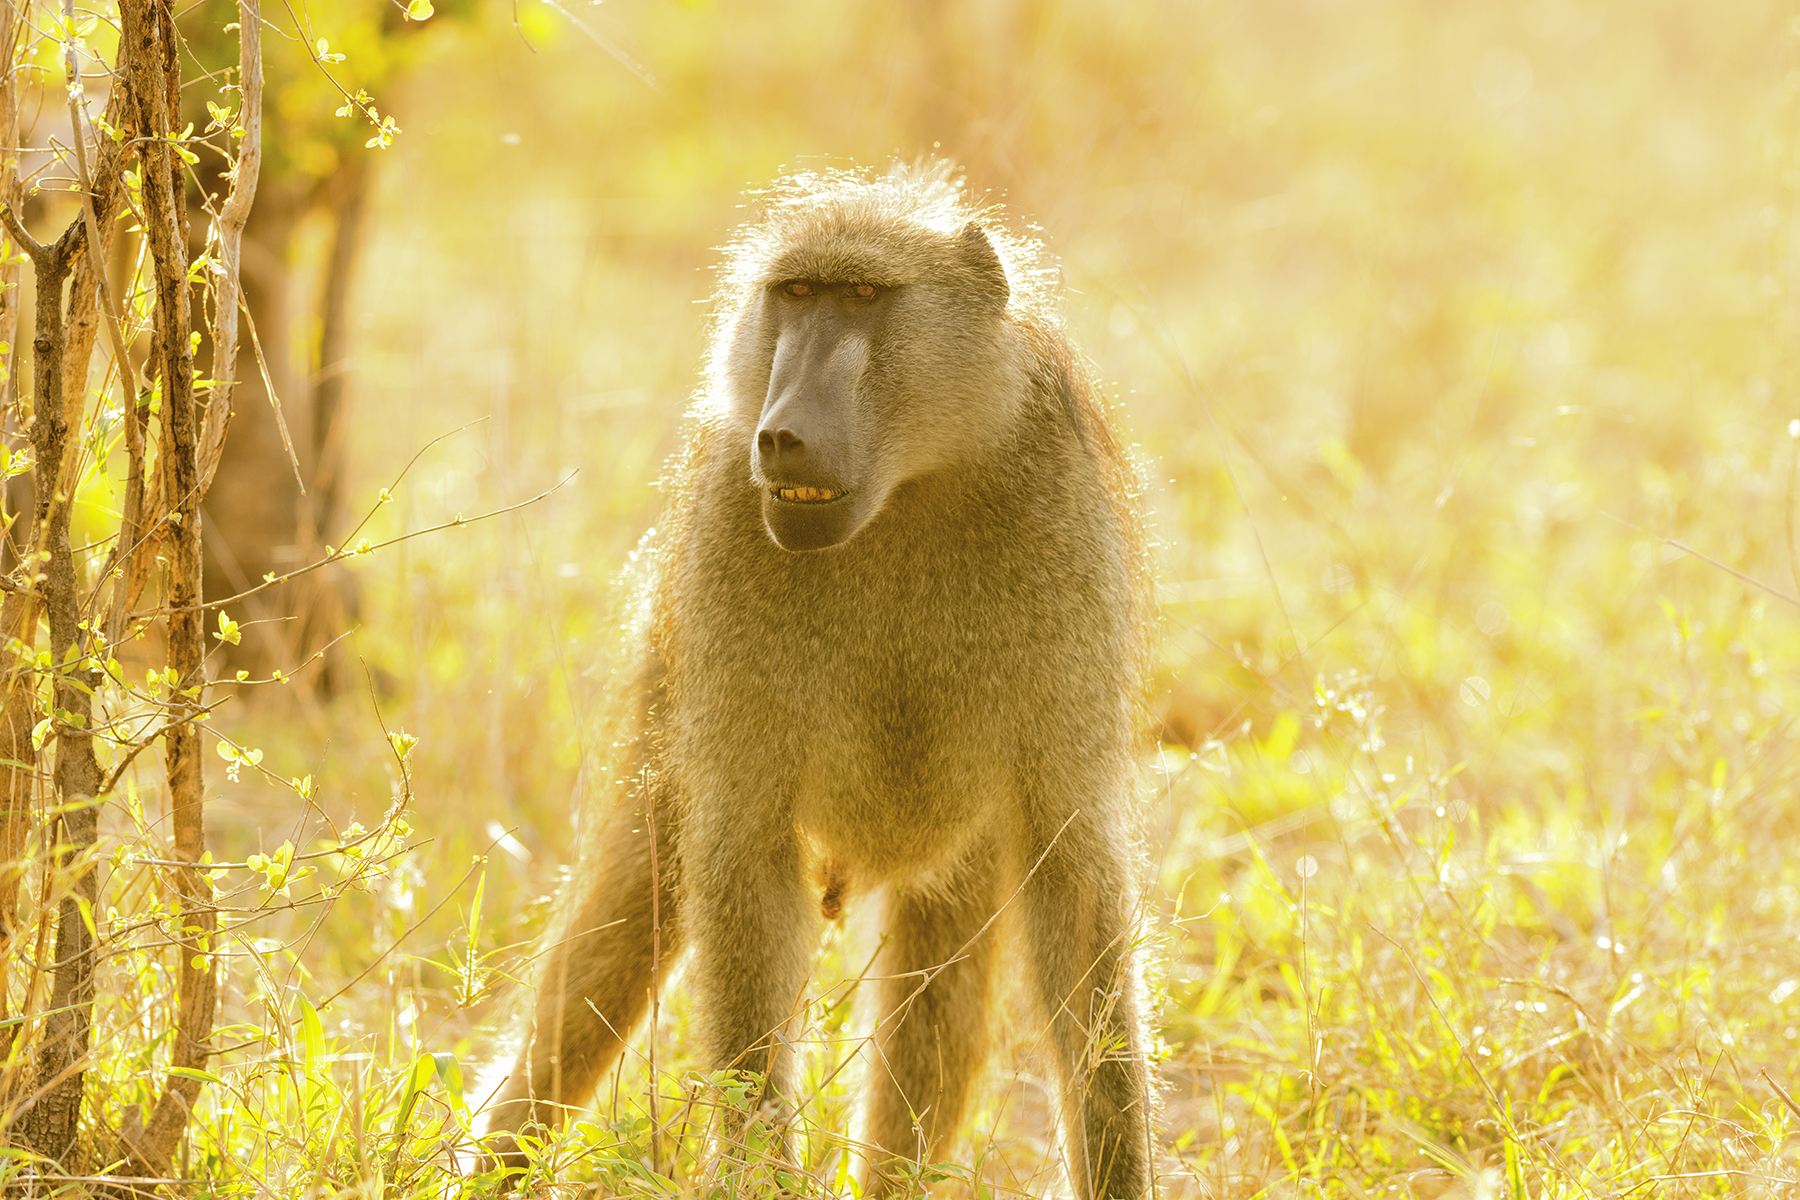 Often overlooked in the search for the famous Big Five. Stopping and spending time in the company of a troop of Cape Baboons may very well be the highlight of your day out in the bushveld.